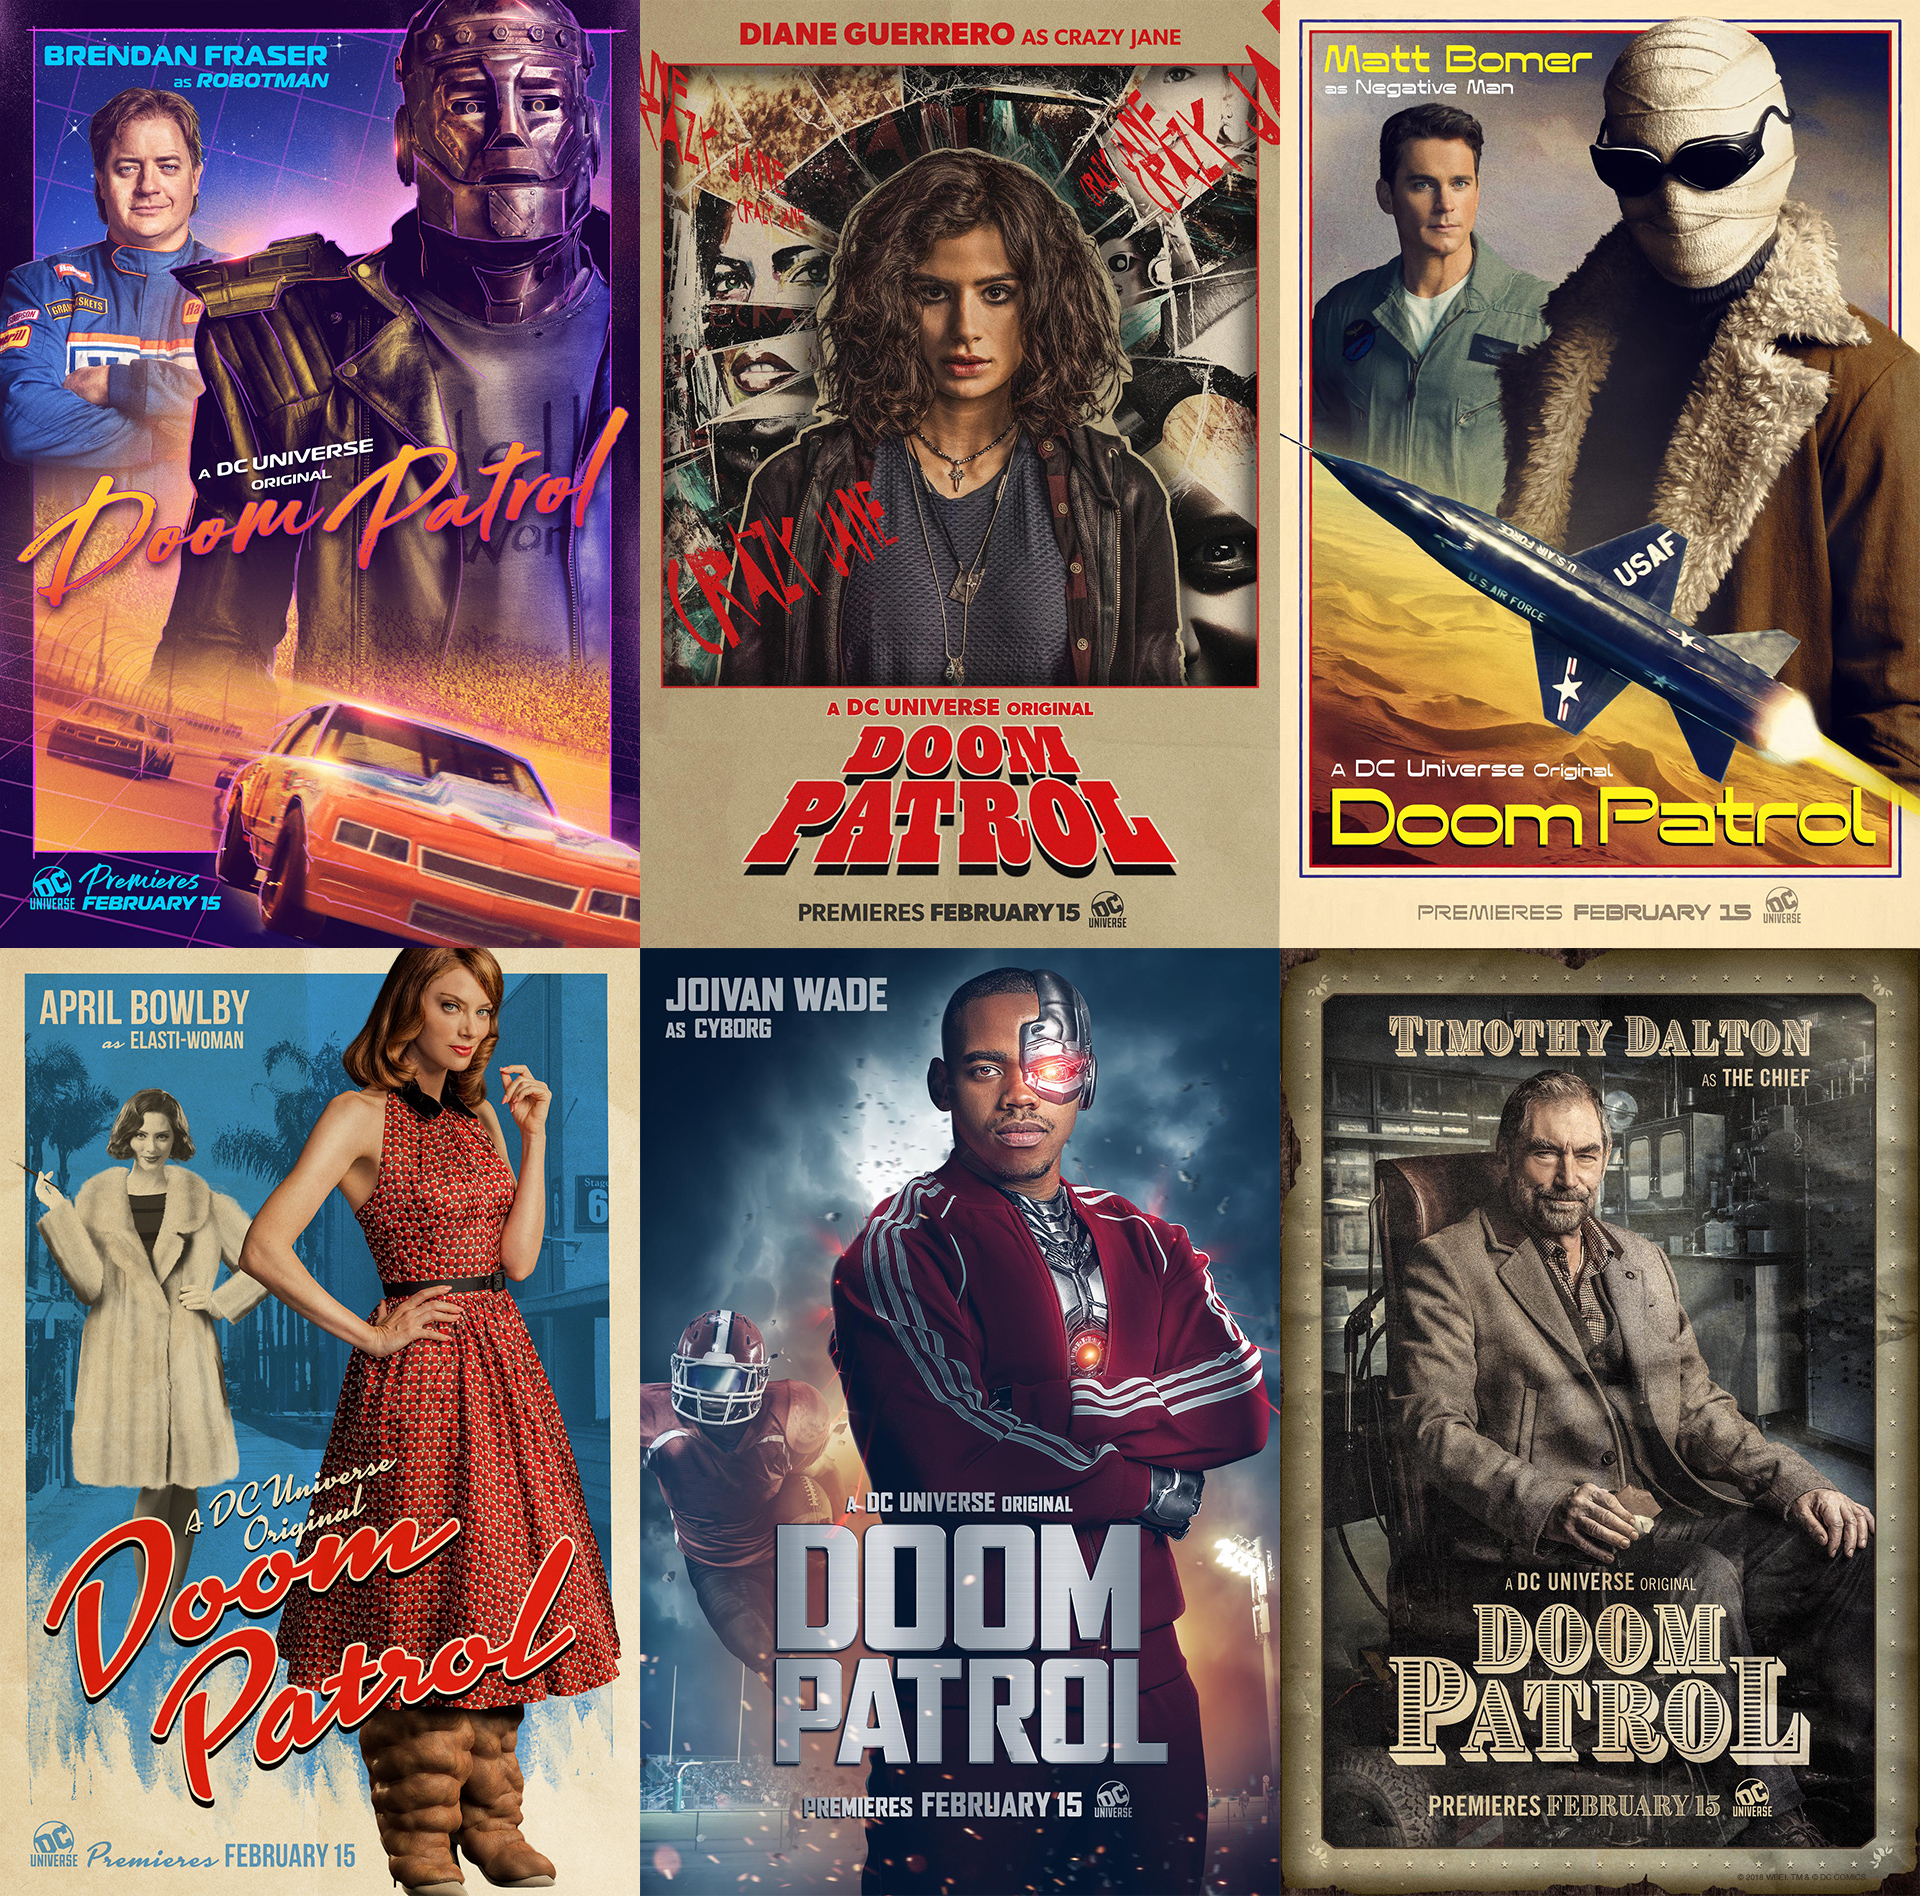 New Character Posters And Teaser Trailer For Doom Patrol